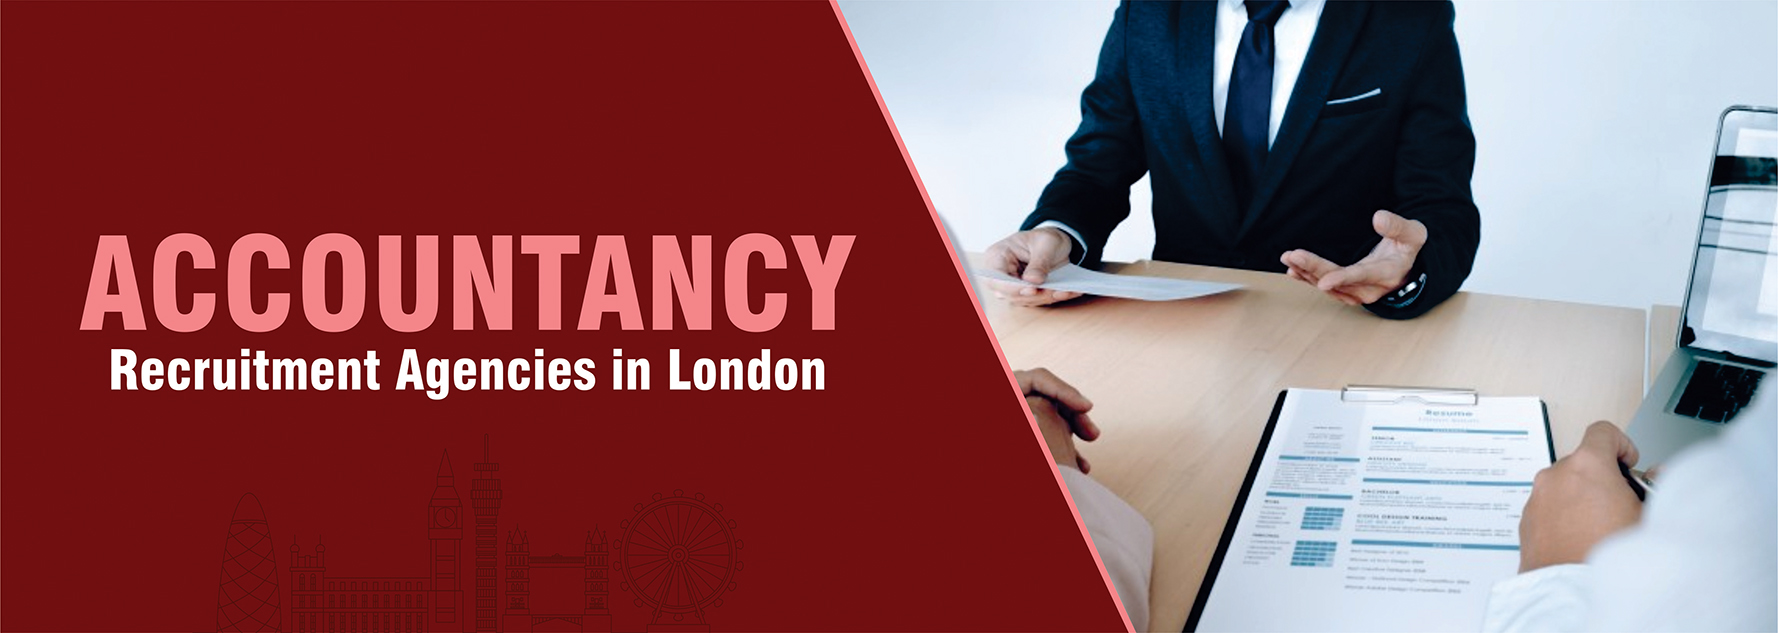 accountancy-recruitment-agencies-london